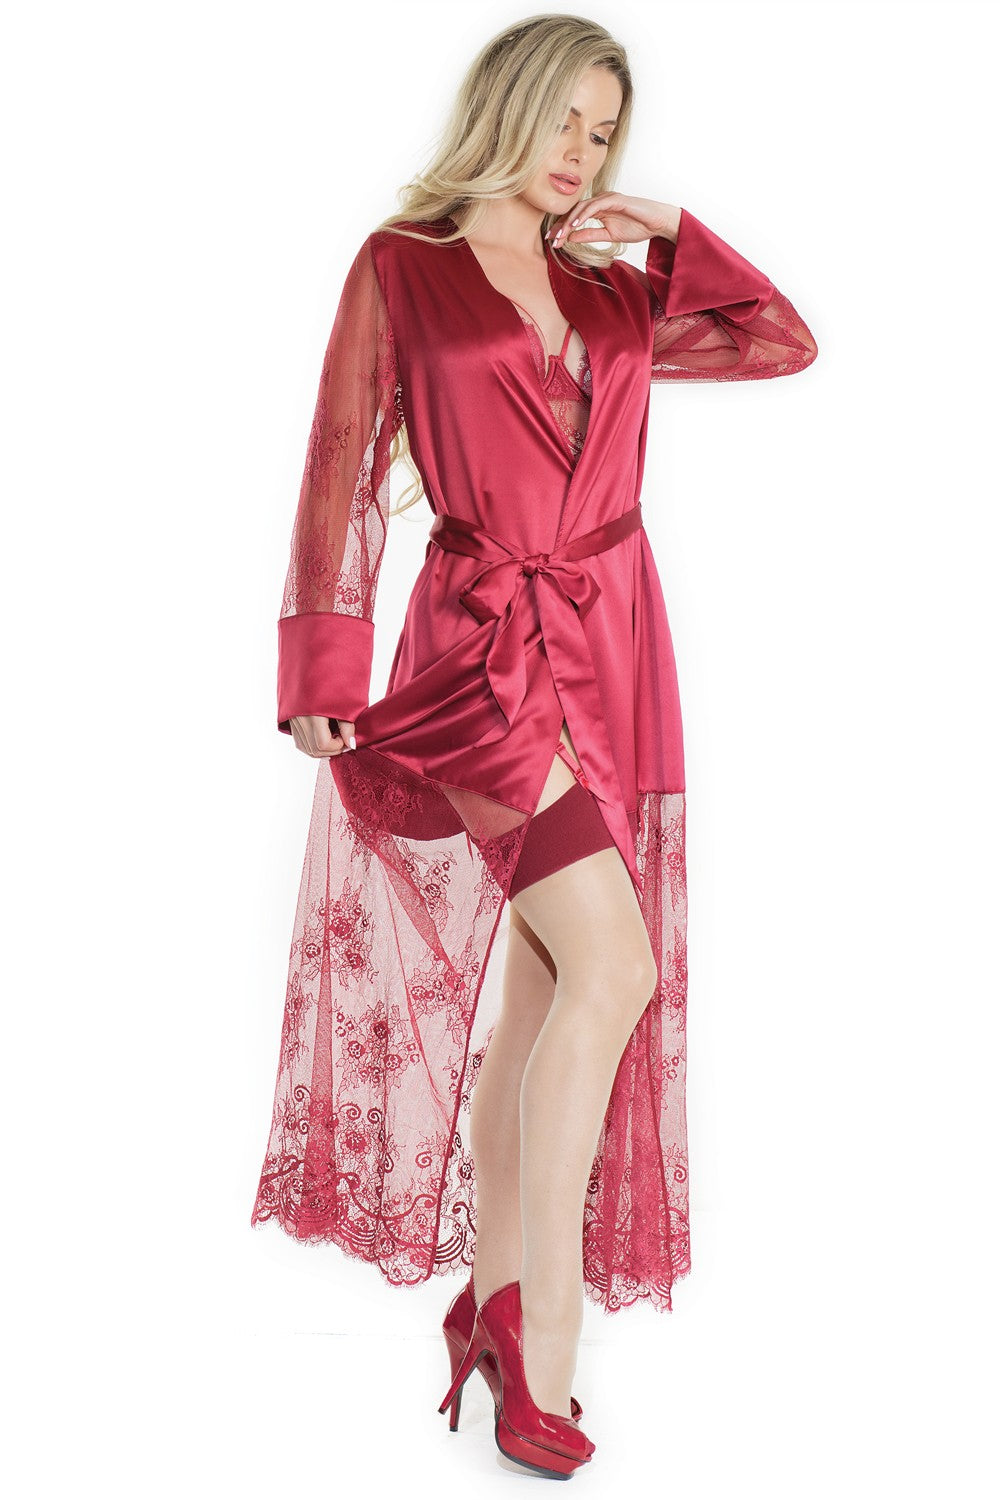 Merlot Satin and Lace Long Robe (7201)